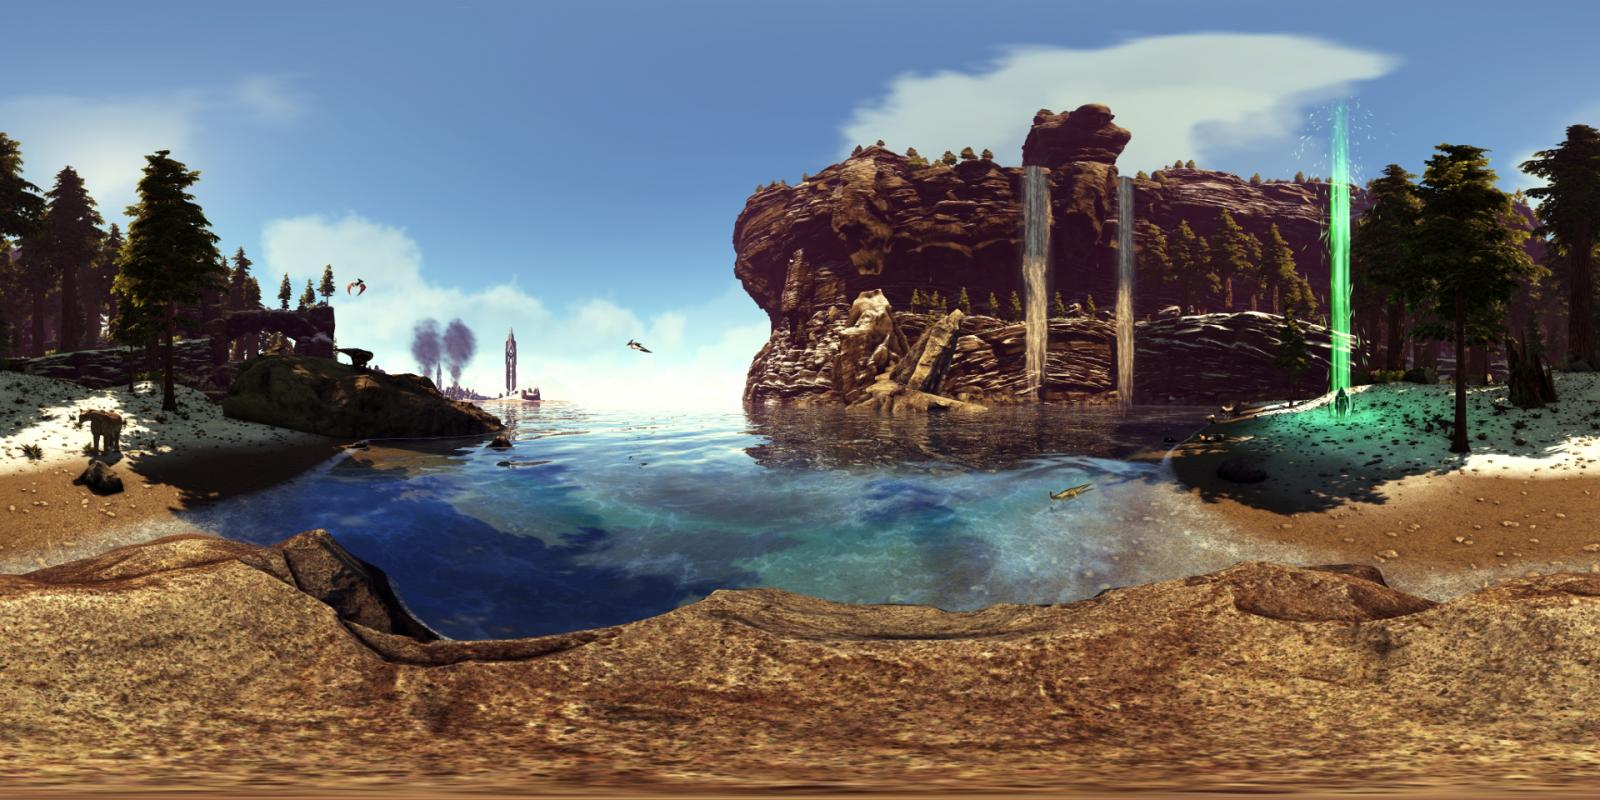 large.5882e6fd61c16_FataL1ty-SealookPoint-Panoramic360Stereoscopic3Dsta.jpg